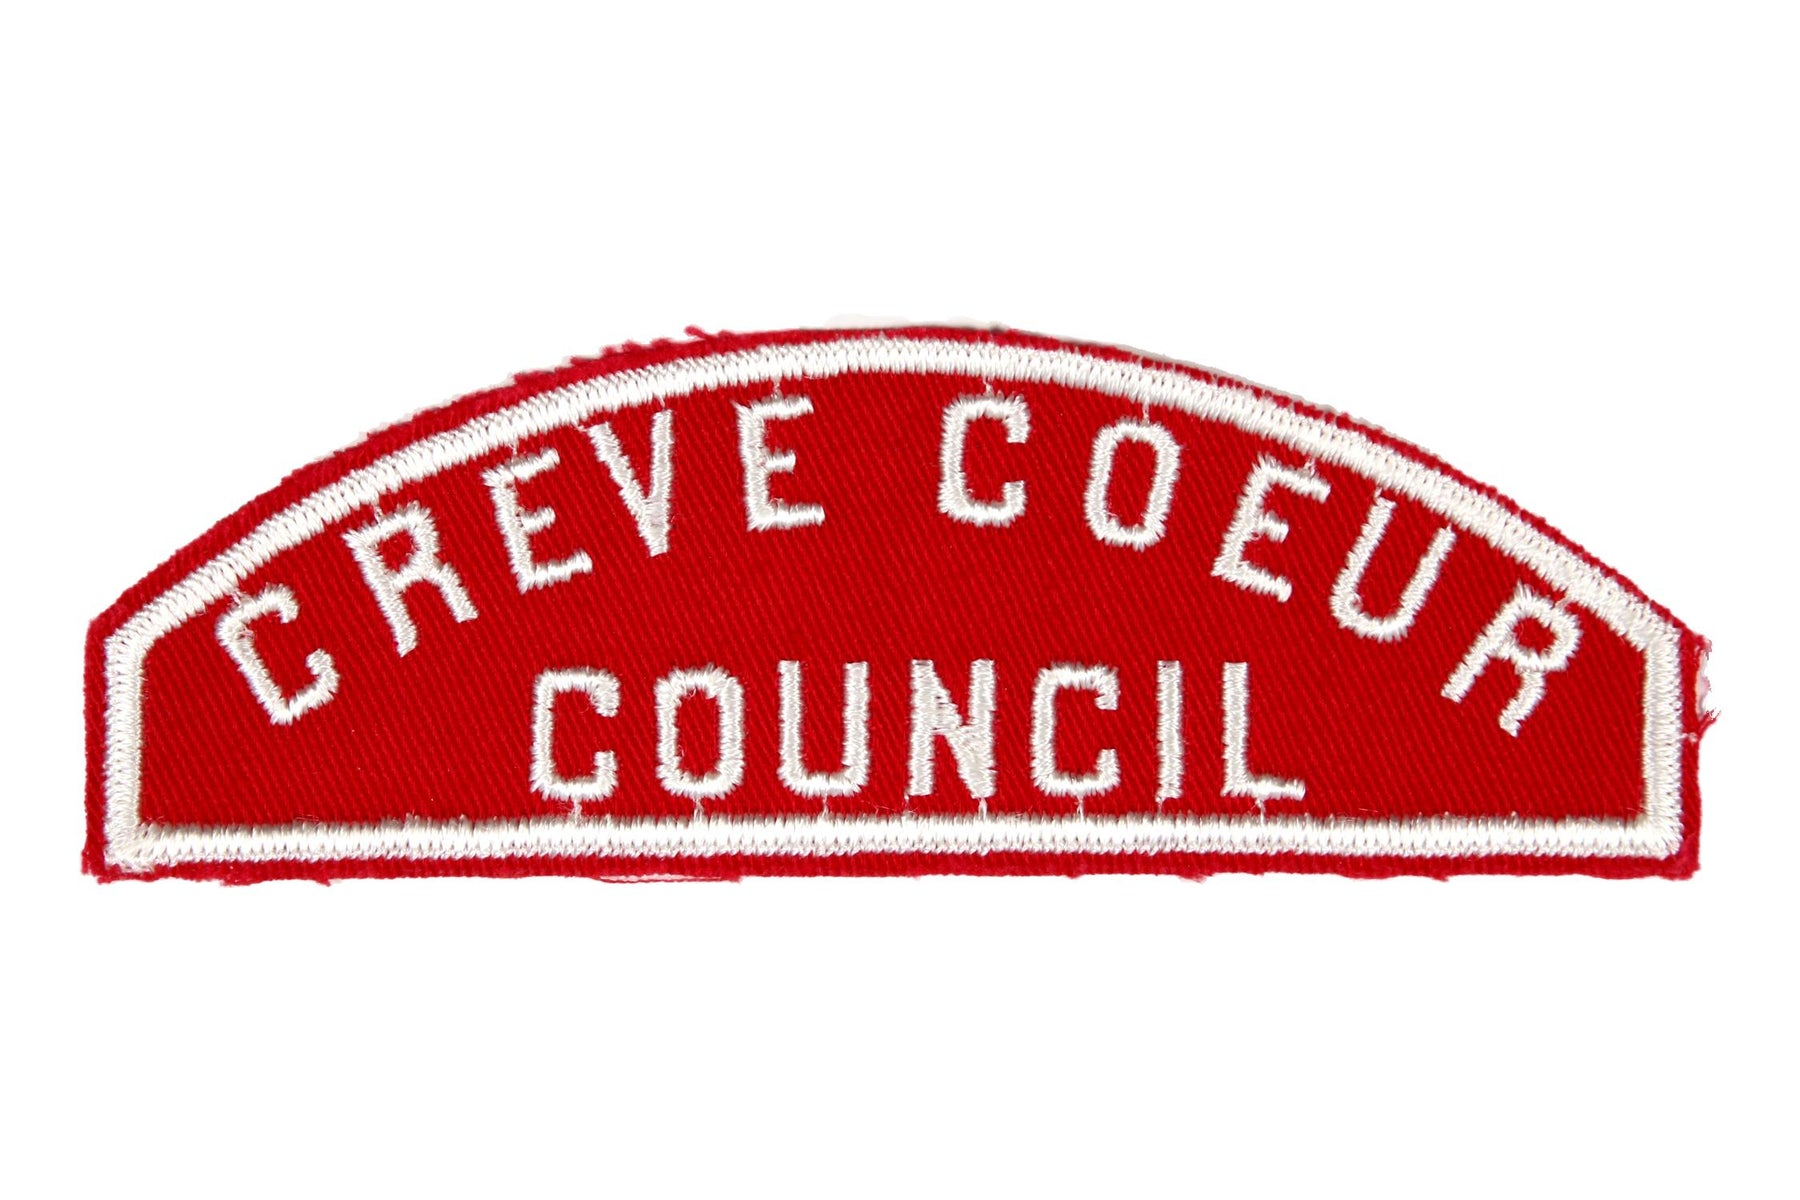 Creve Coeur Red and White Council Strip